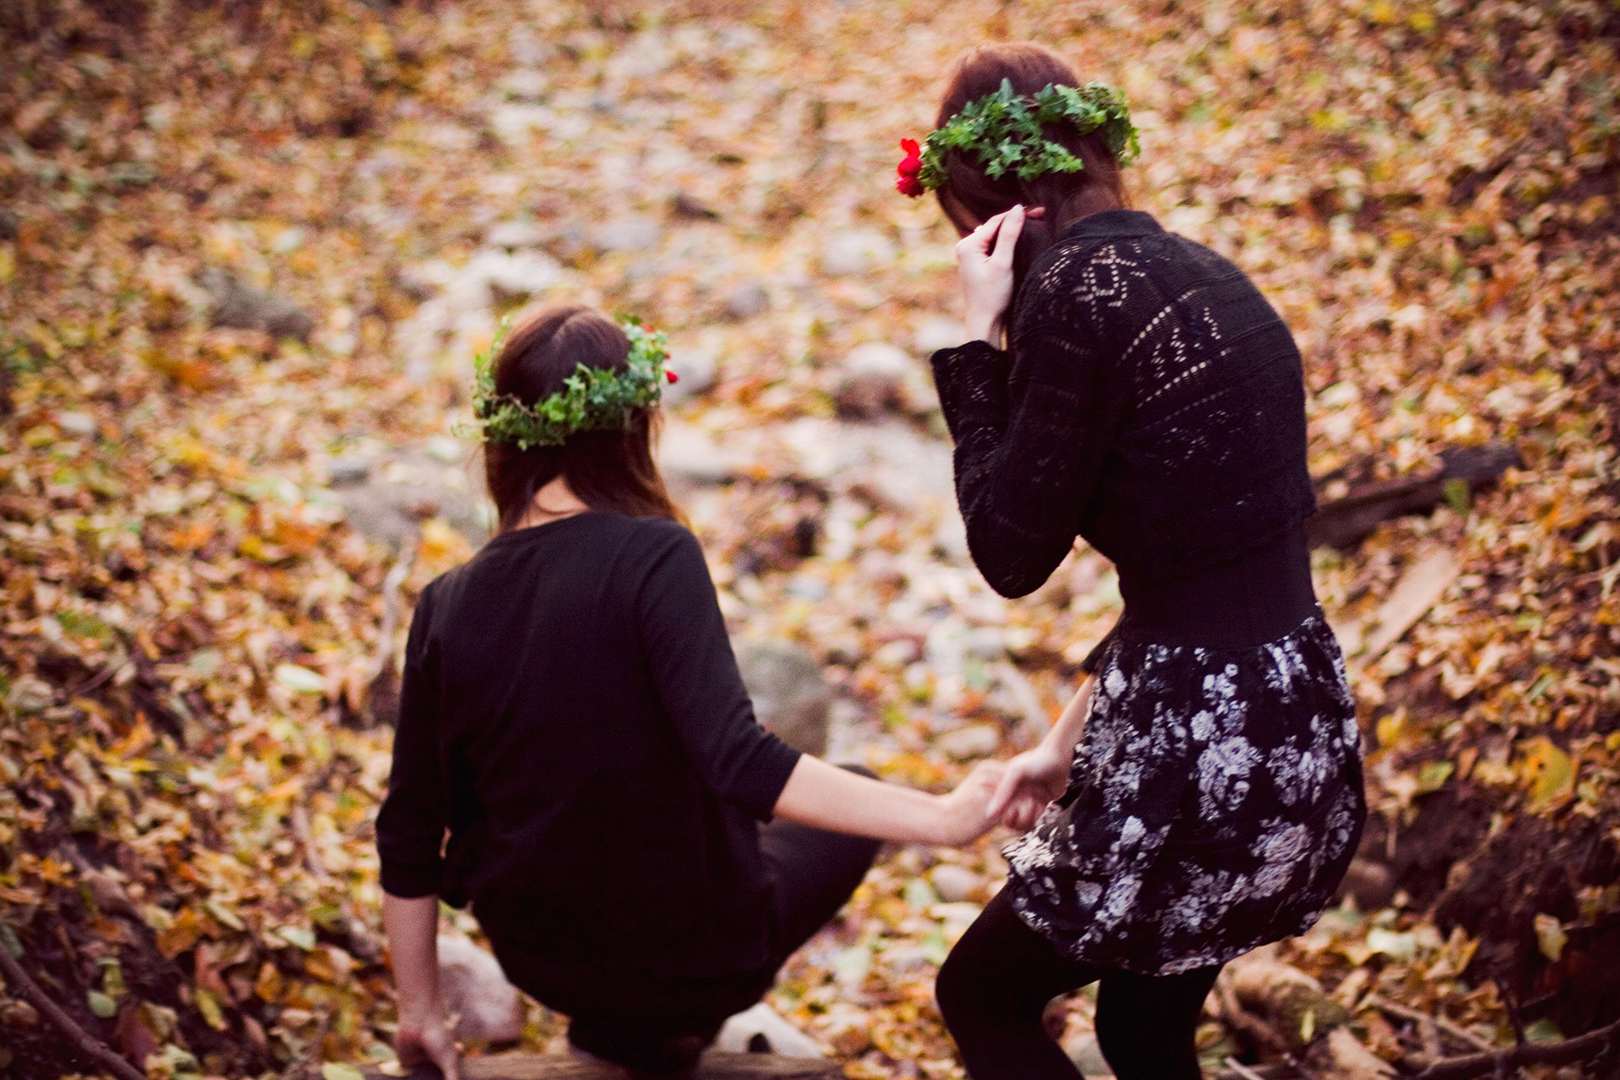 girls in flower crowns in a forest climbing by Ailera Stone